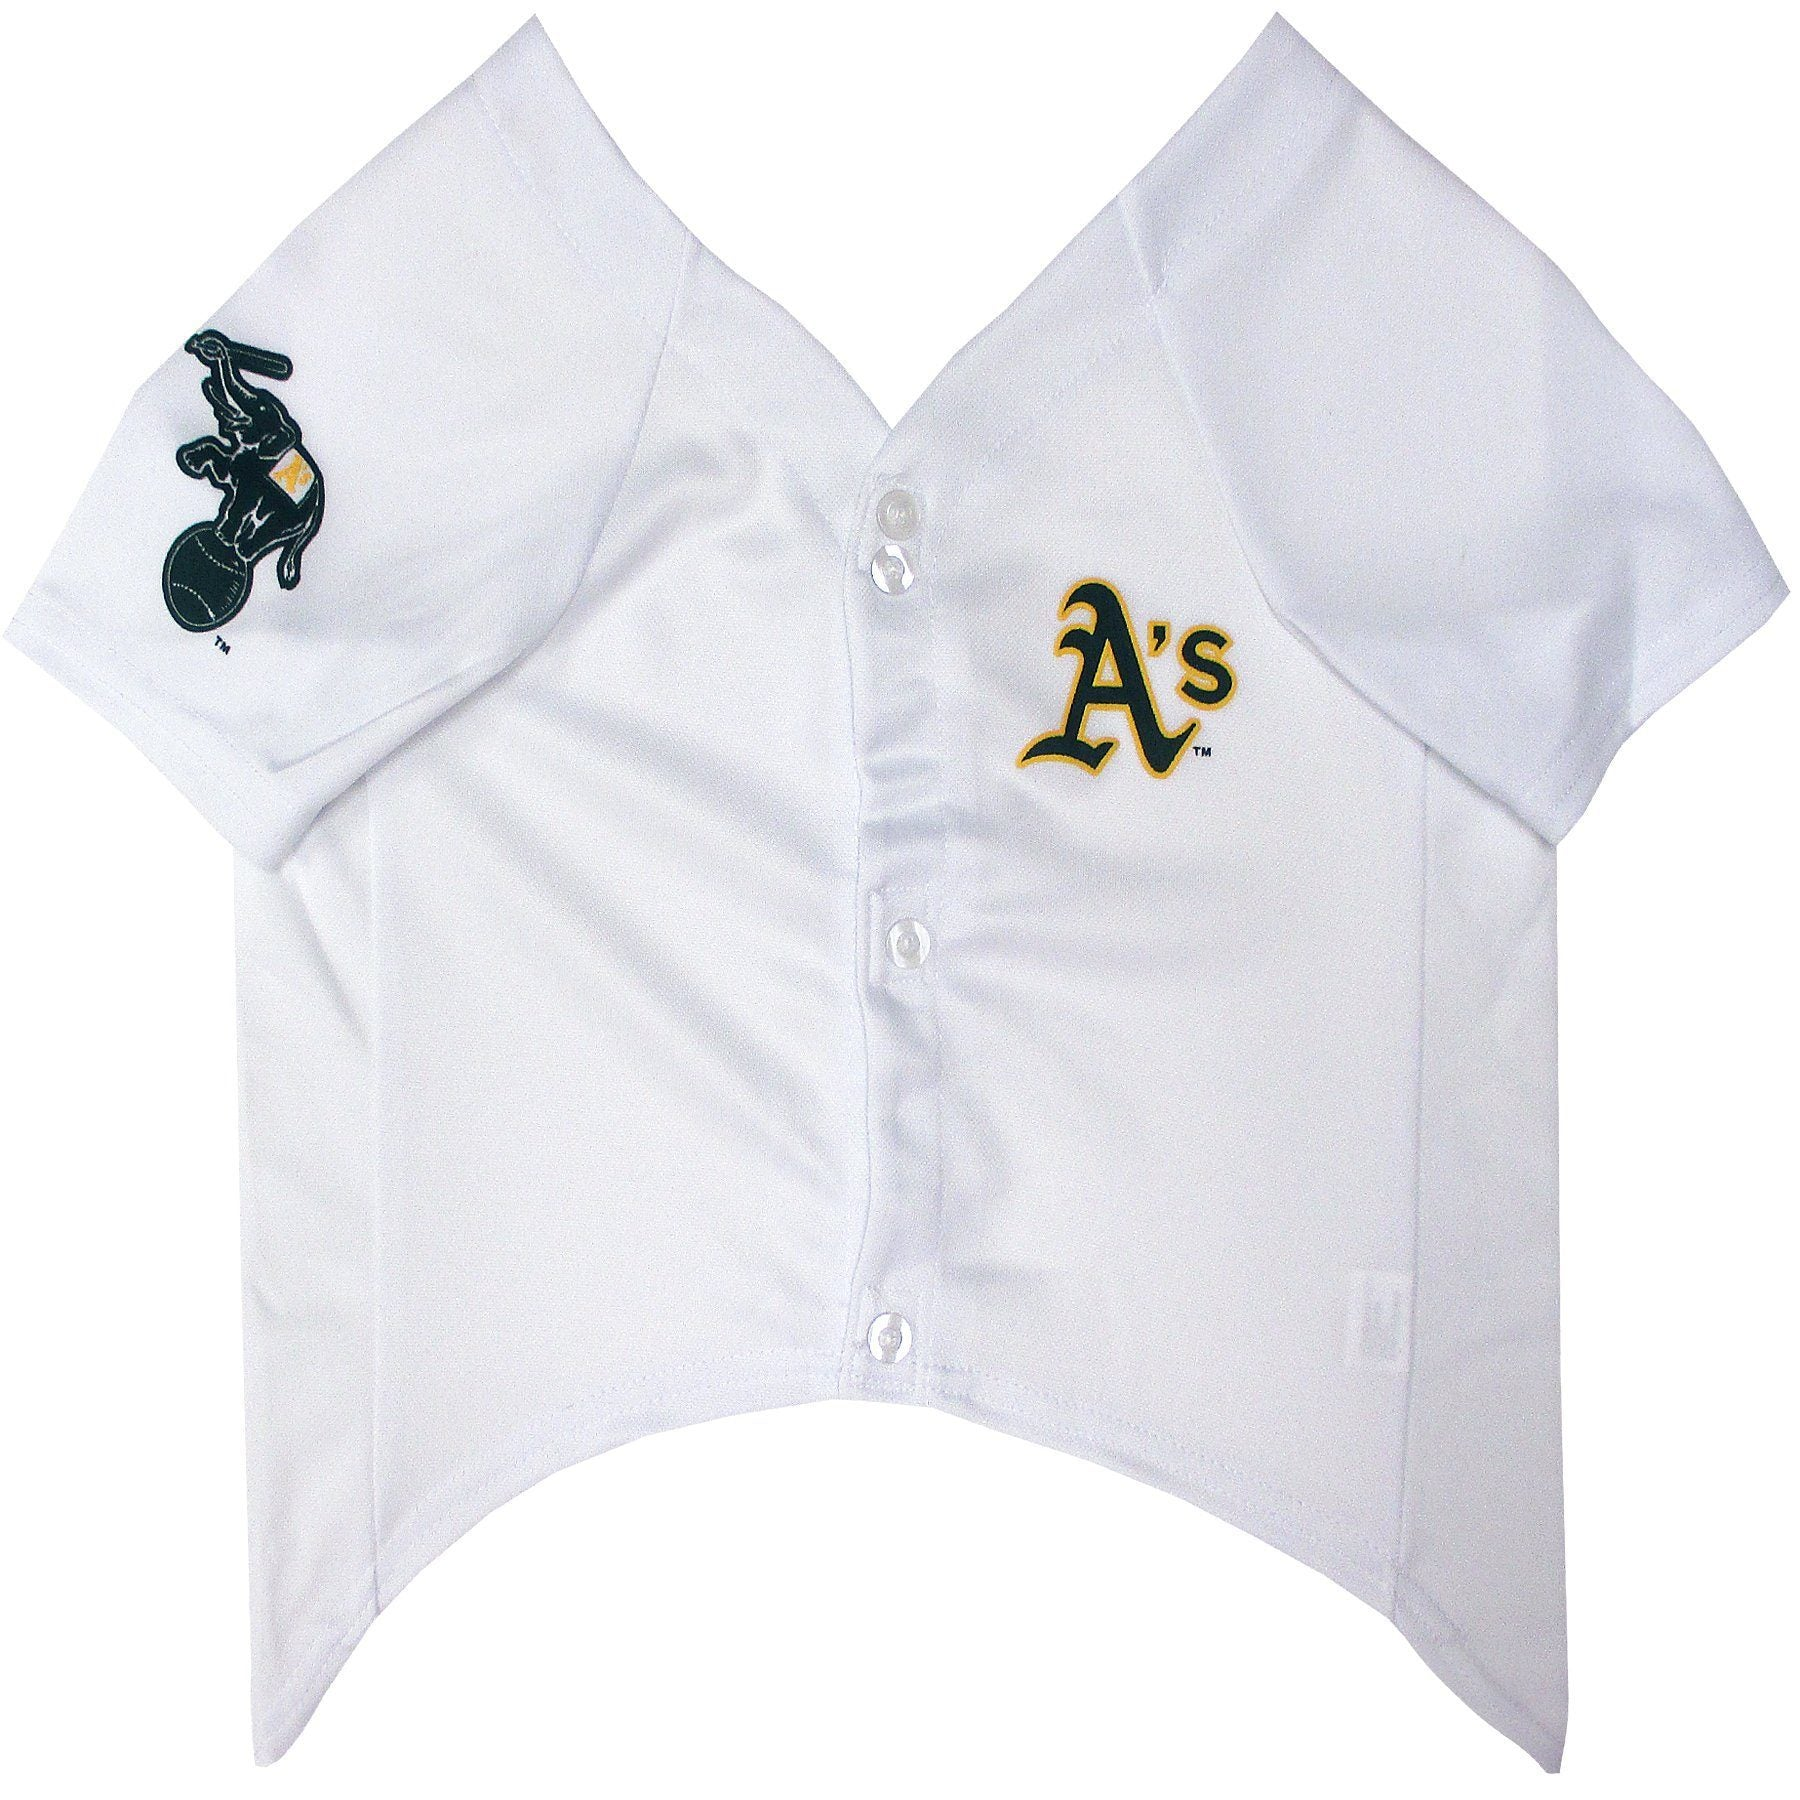 Oakland Athletics Puppy Dog Baseball Jersey - Jersey Champs - Custom Basketball, Baseball, Football & Hockey Jerseys